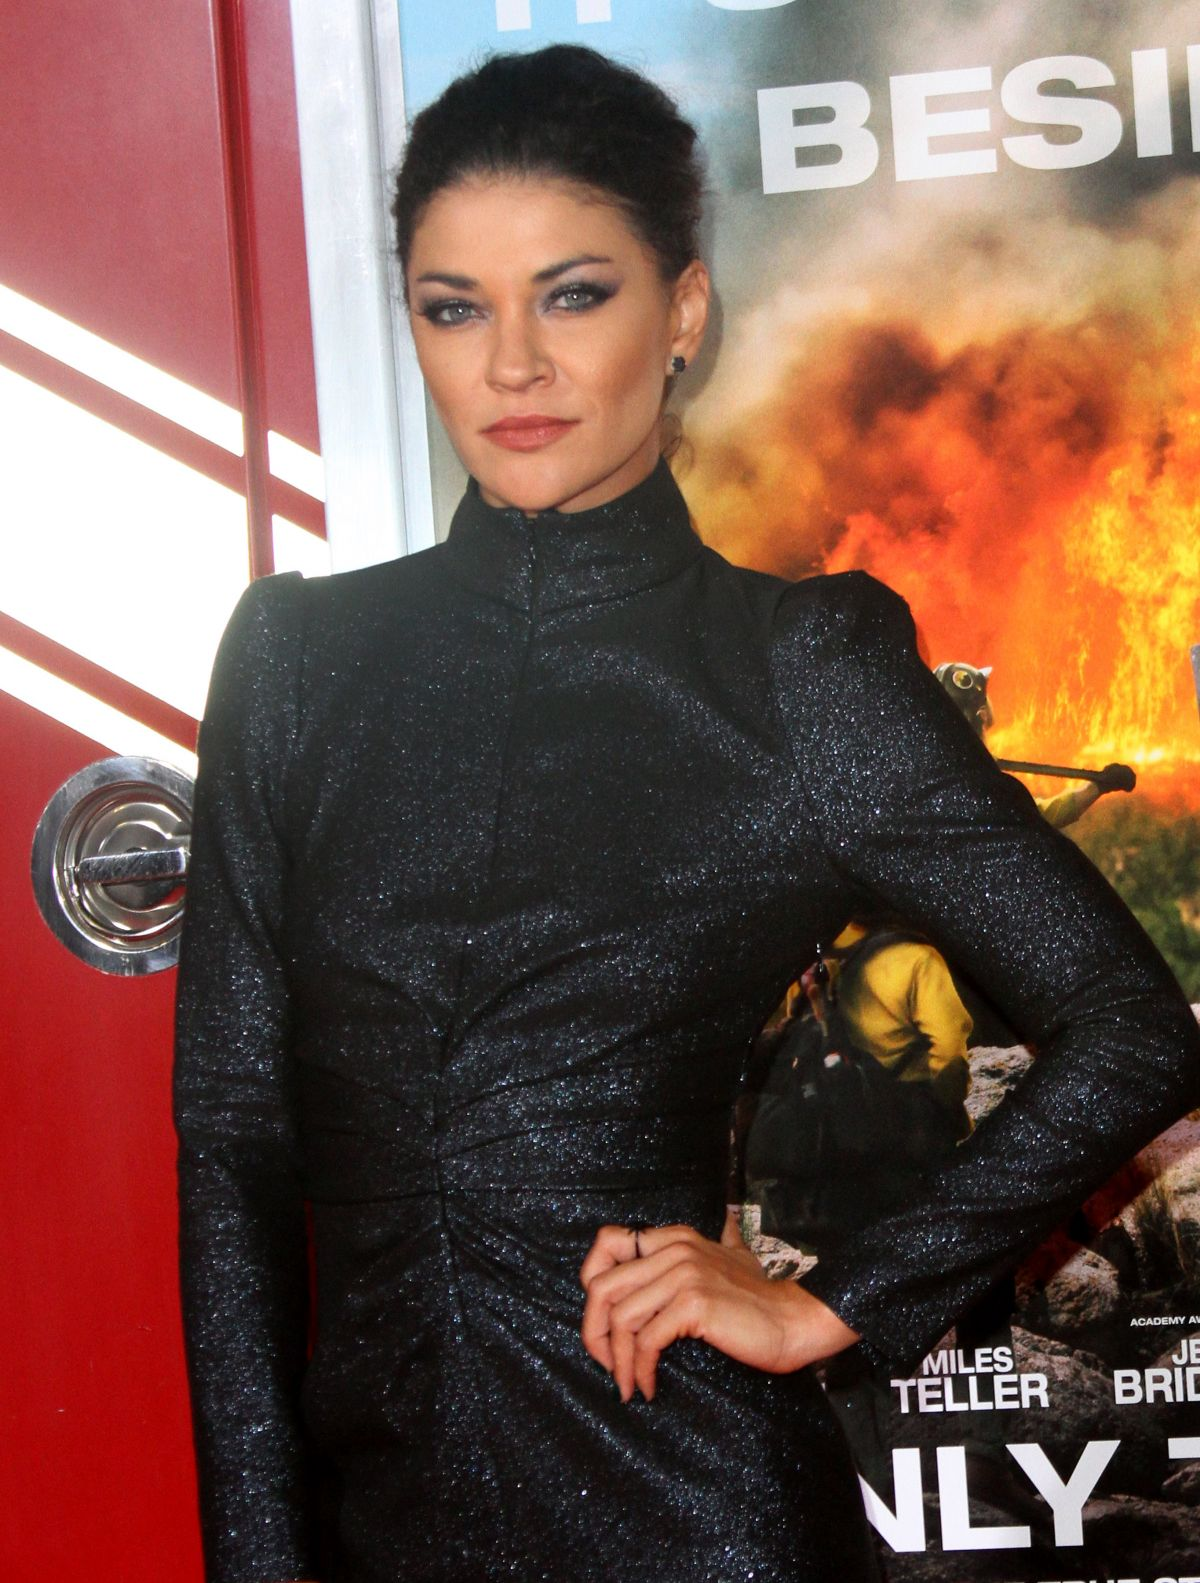 a180d896fb3d Jessica Szohr At  Only The Brave  film premiere